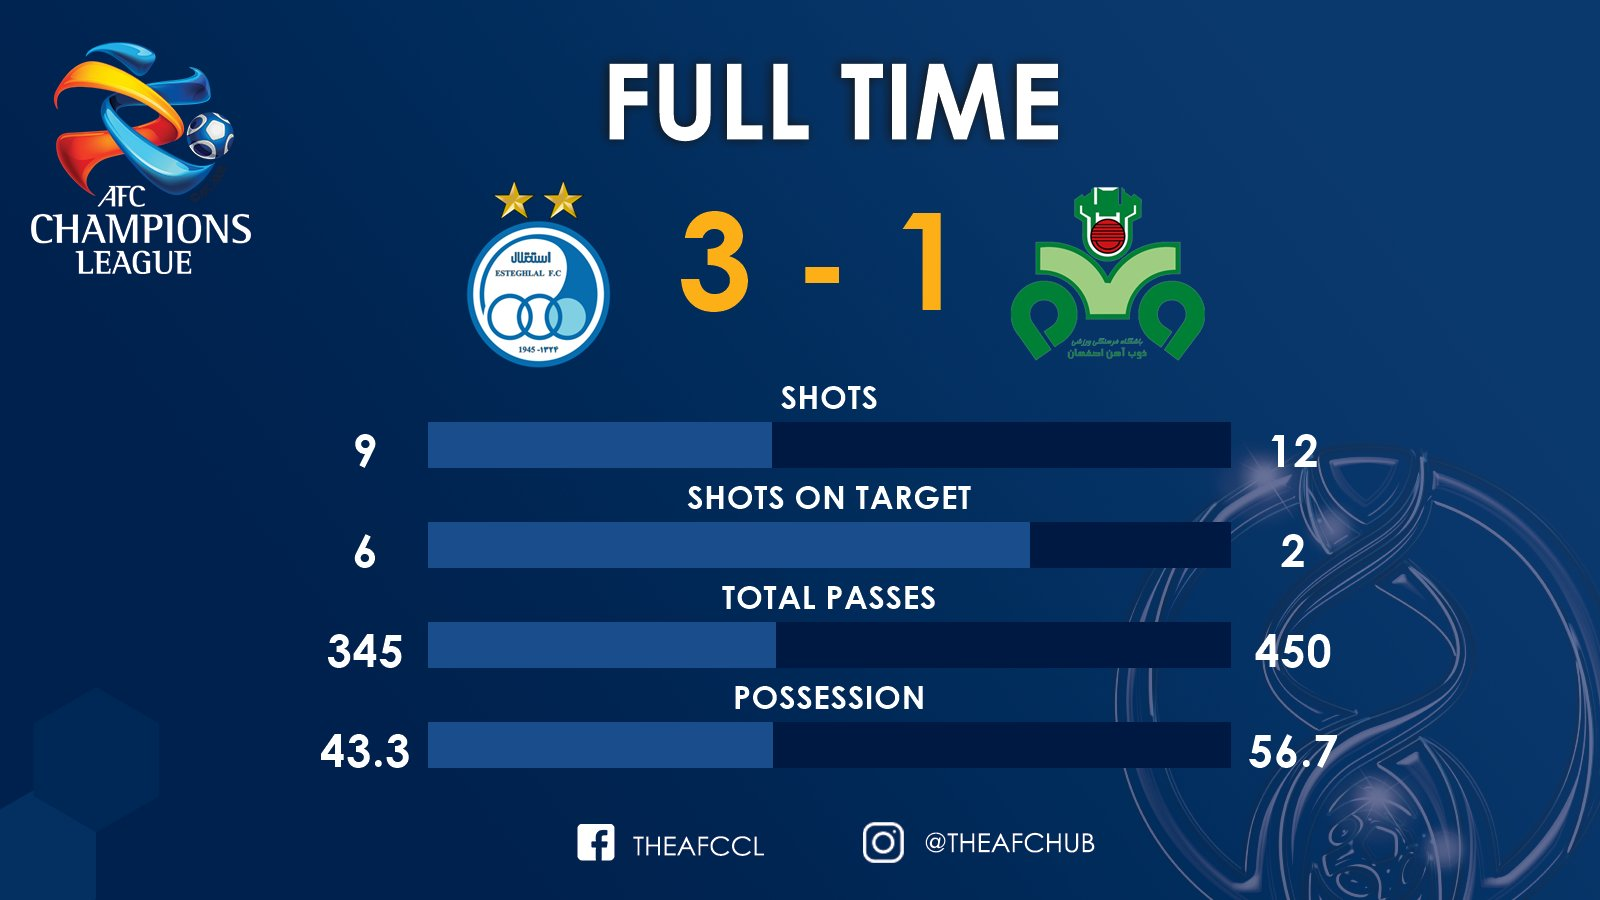 AFC Champions League On Twitter FULL TIME